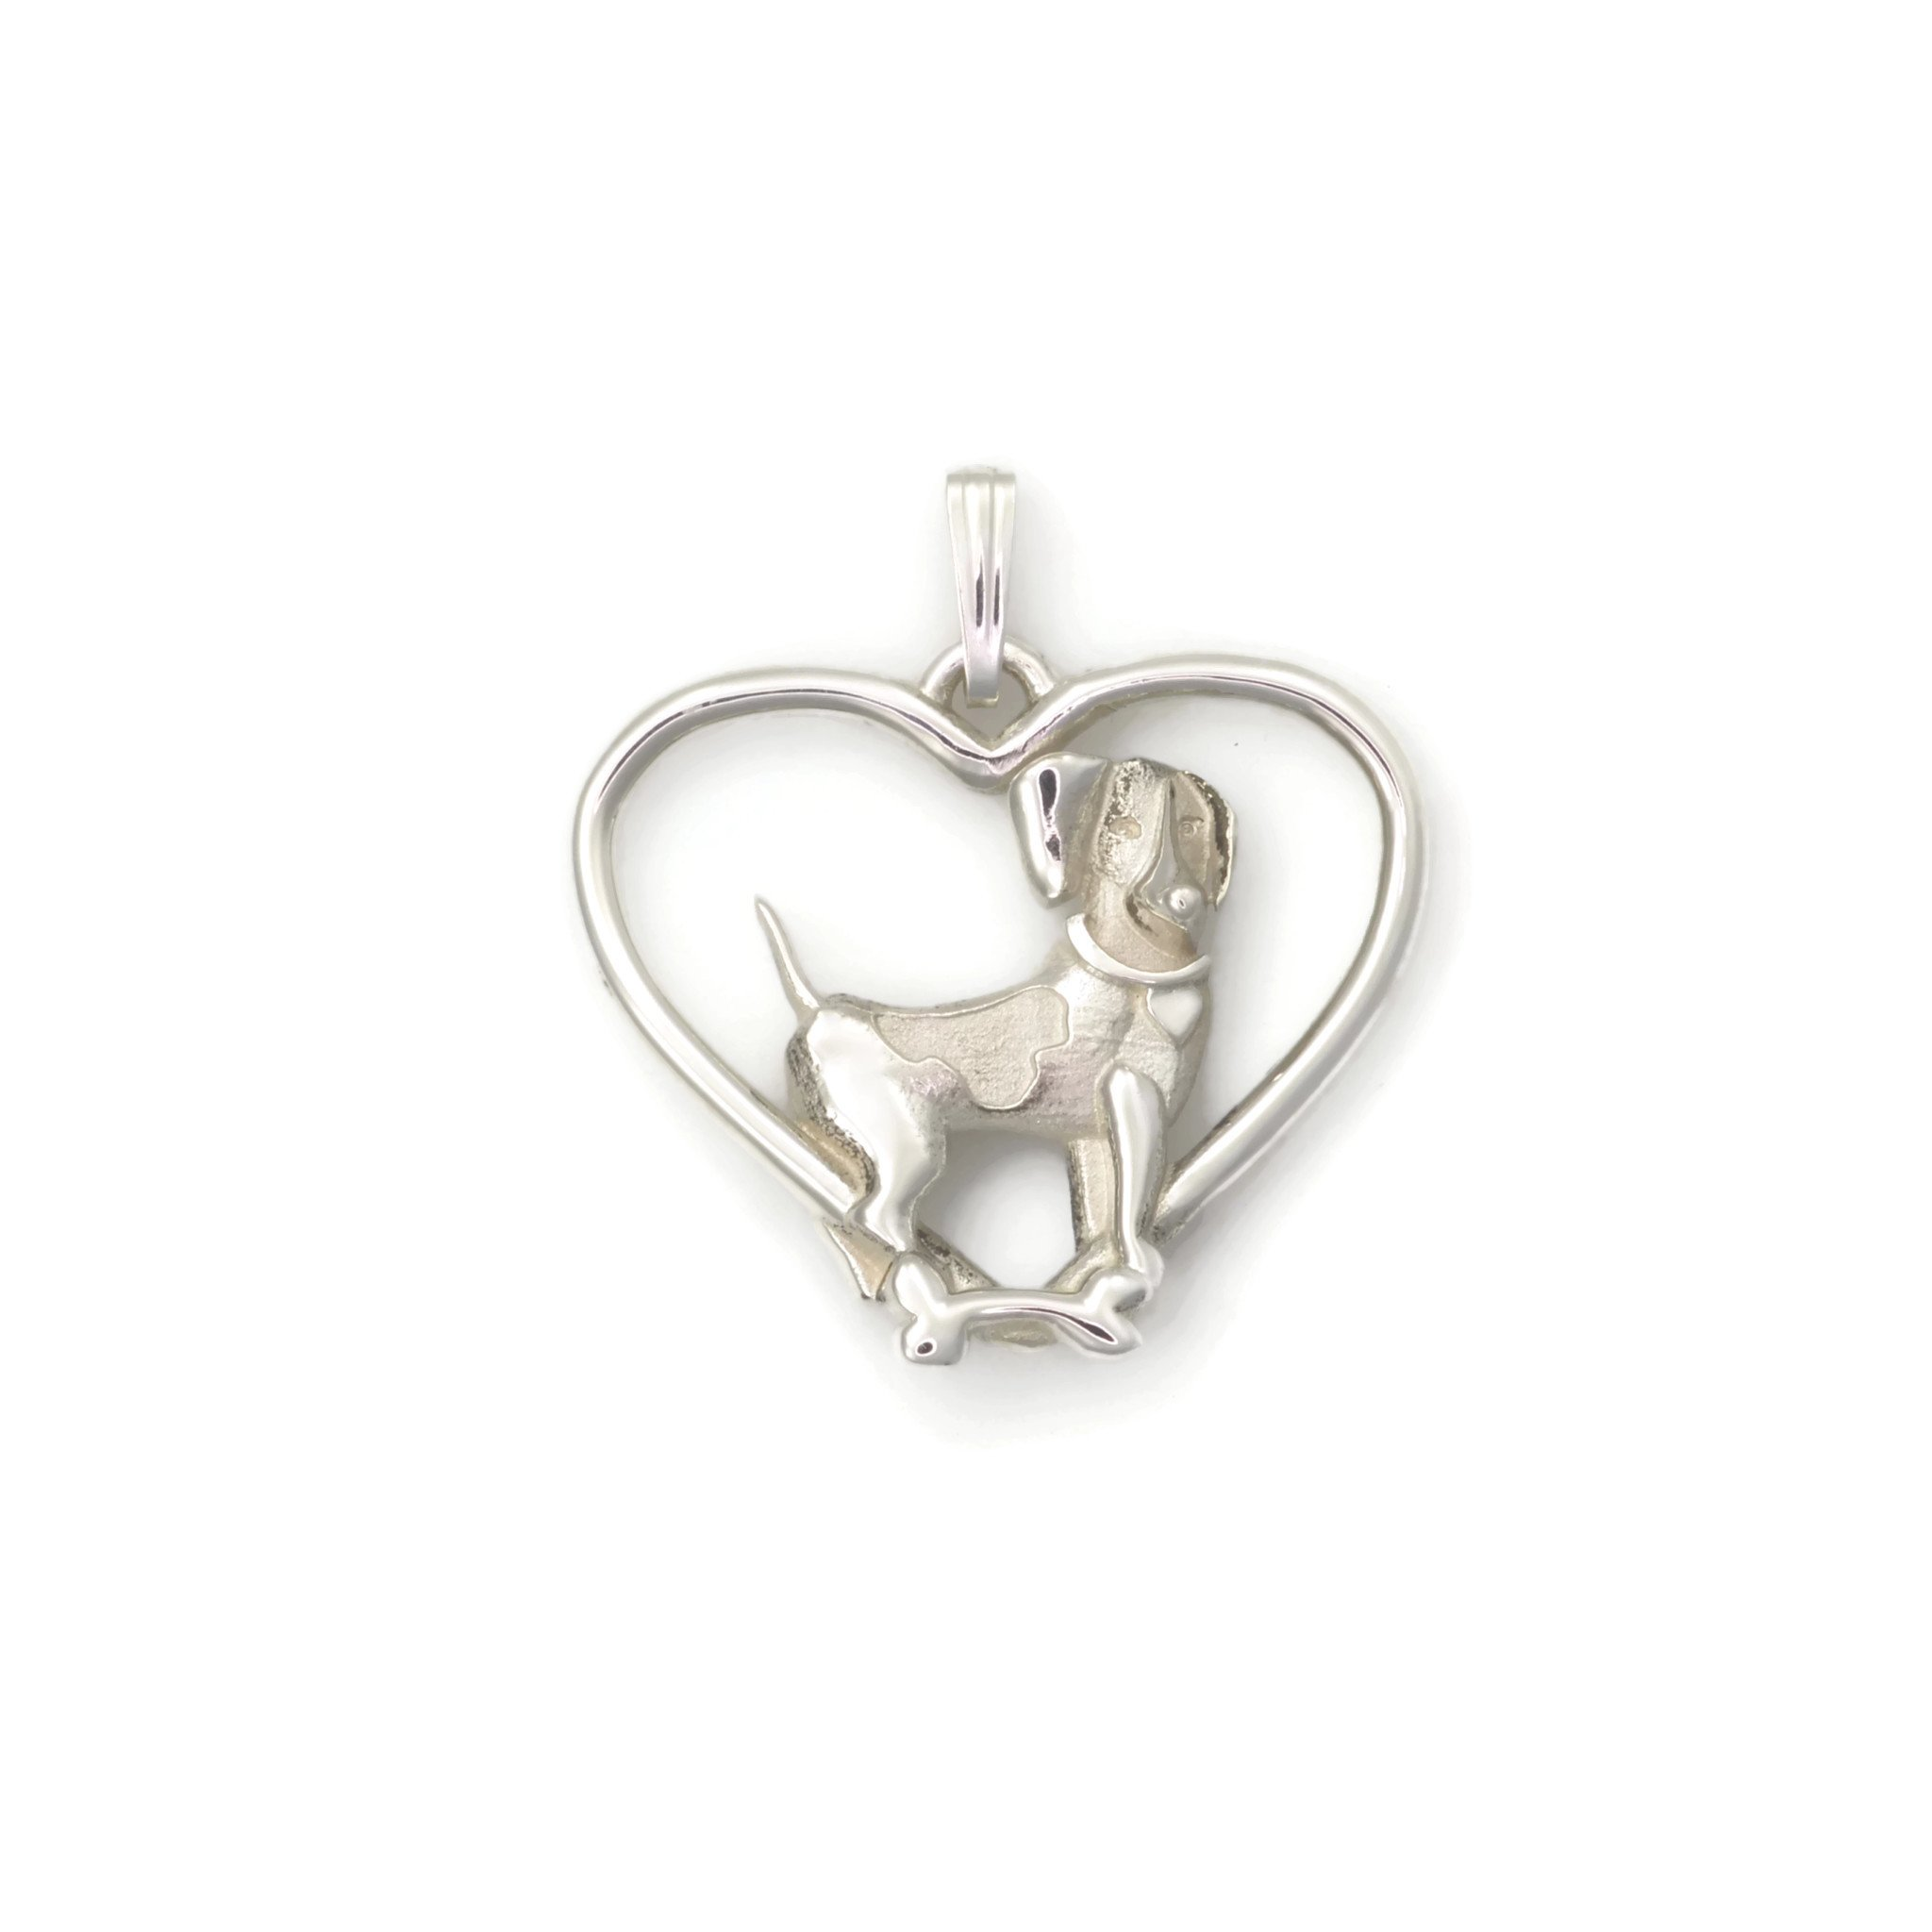 Sterling Silver Beagle Necklace, Silver Beagle Pendant fr Donna Pizarro's Animal Whimsey Collection of Fine Beagle jewelry by Donna Pizarro Designs